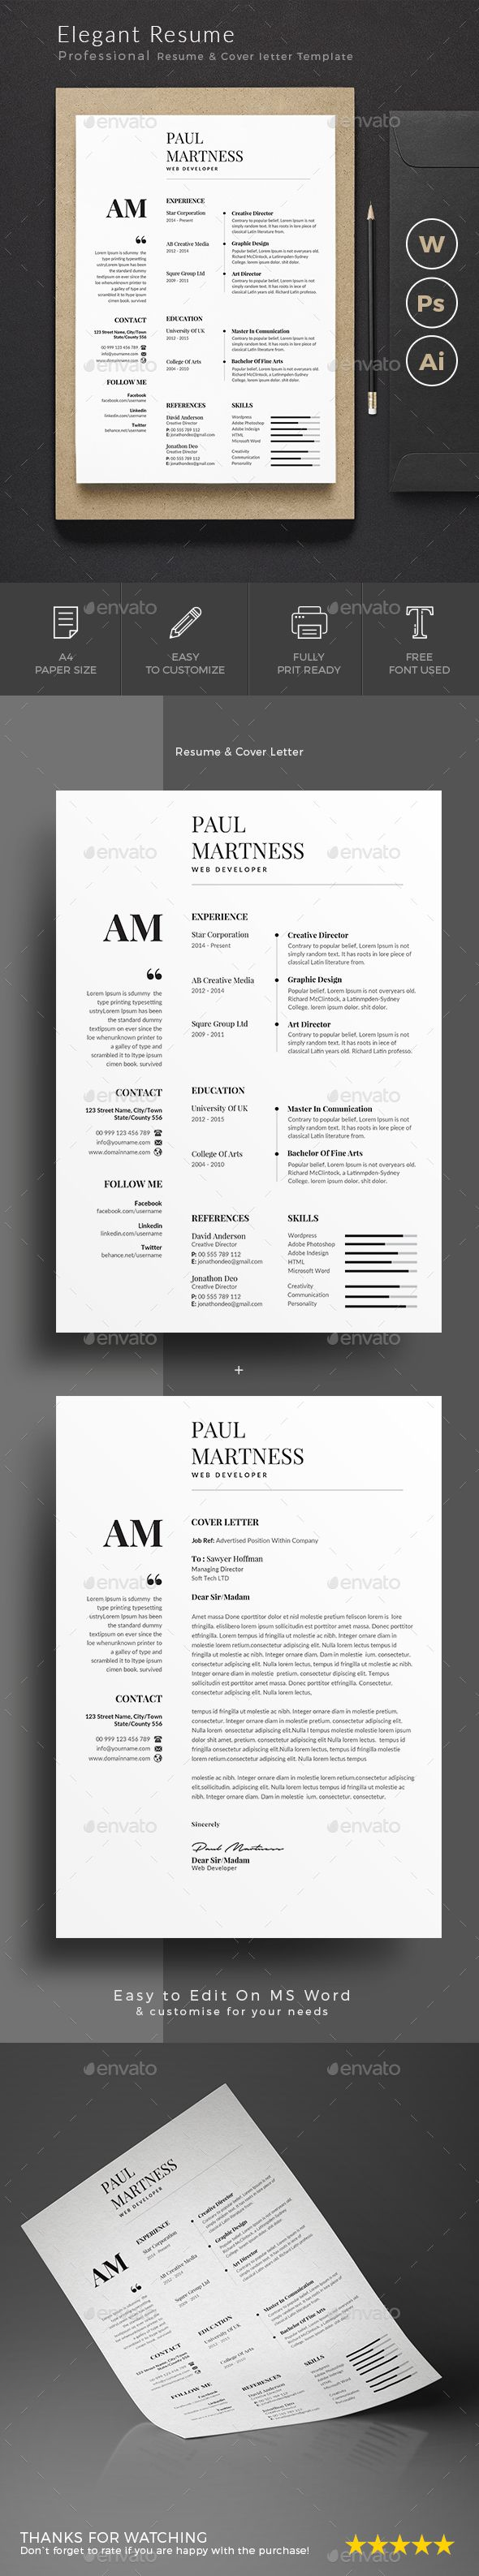 Resume — Photoshop PSD #resume #cover letter • Download ➝ https://graphicriver.net/item/resume/20115087?ref=pxcr